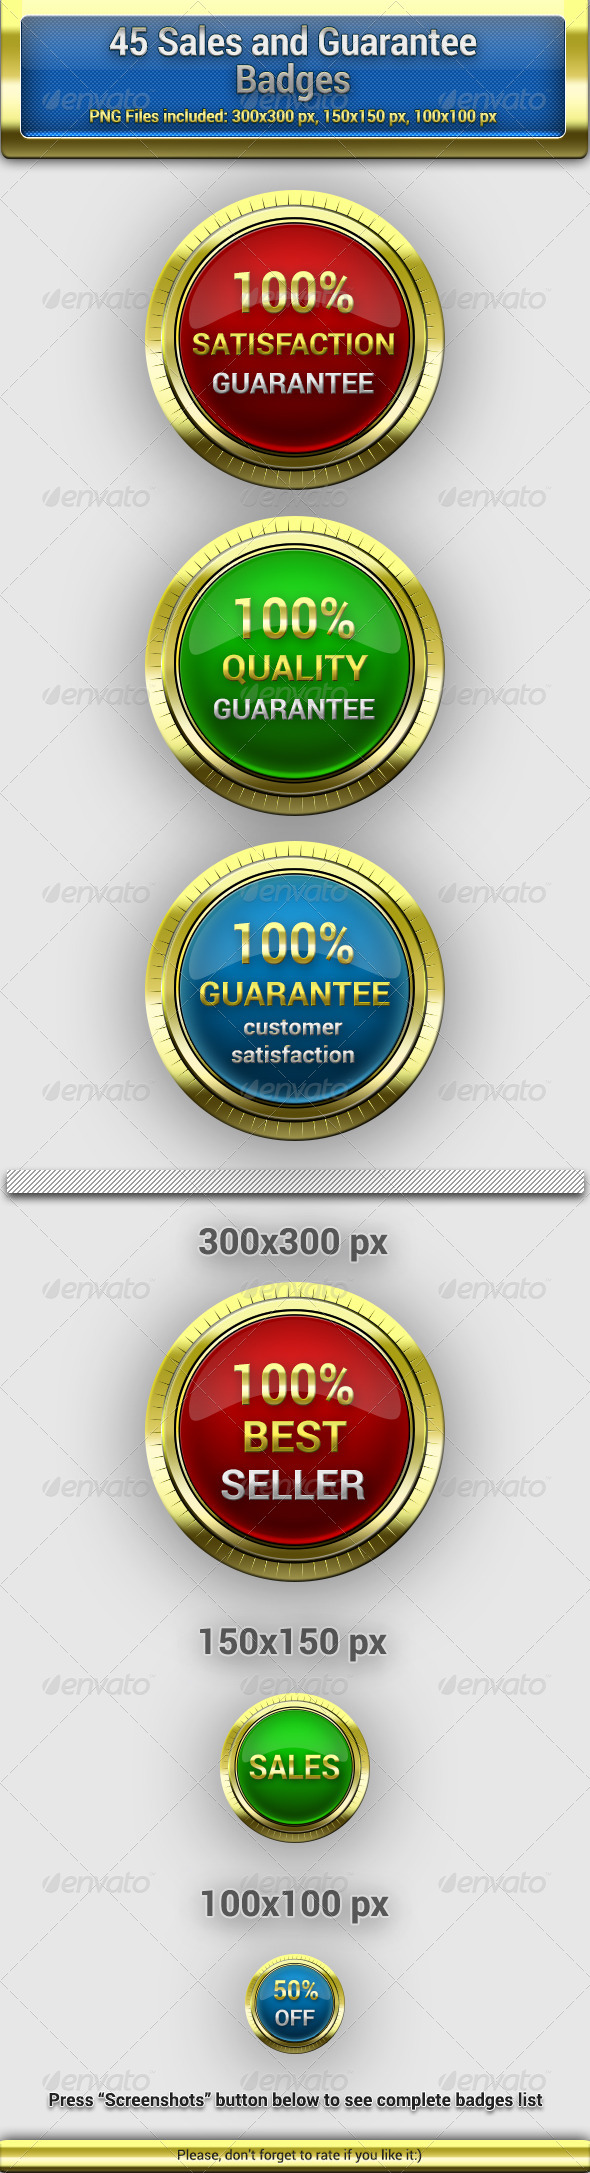 45 Sales and Guarantee Badges  - Badges & Stickers Web Elements